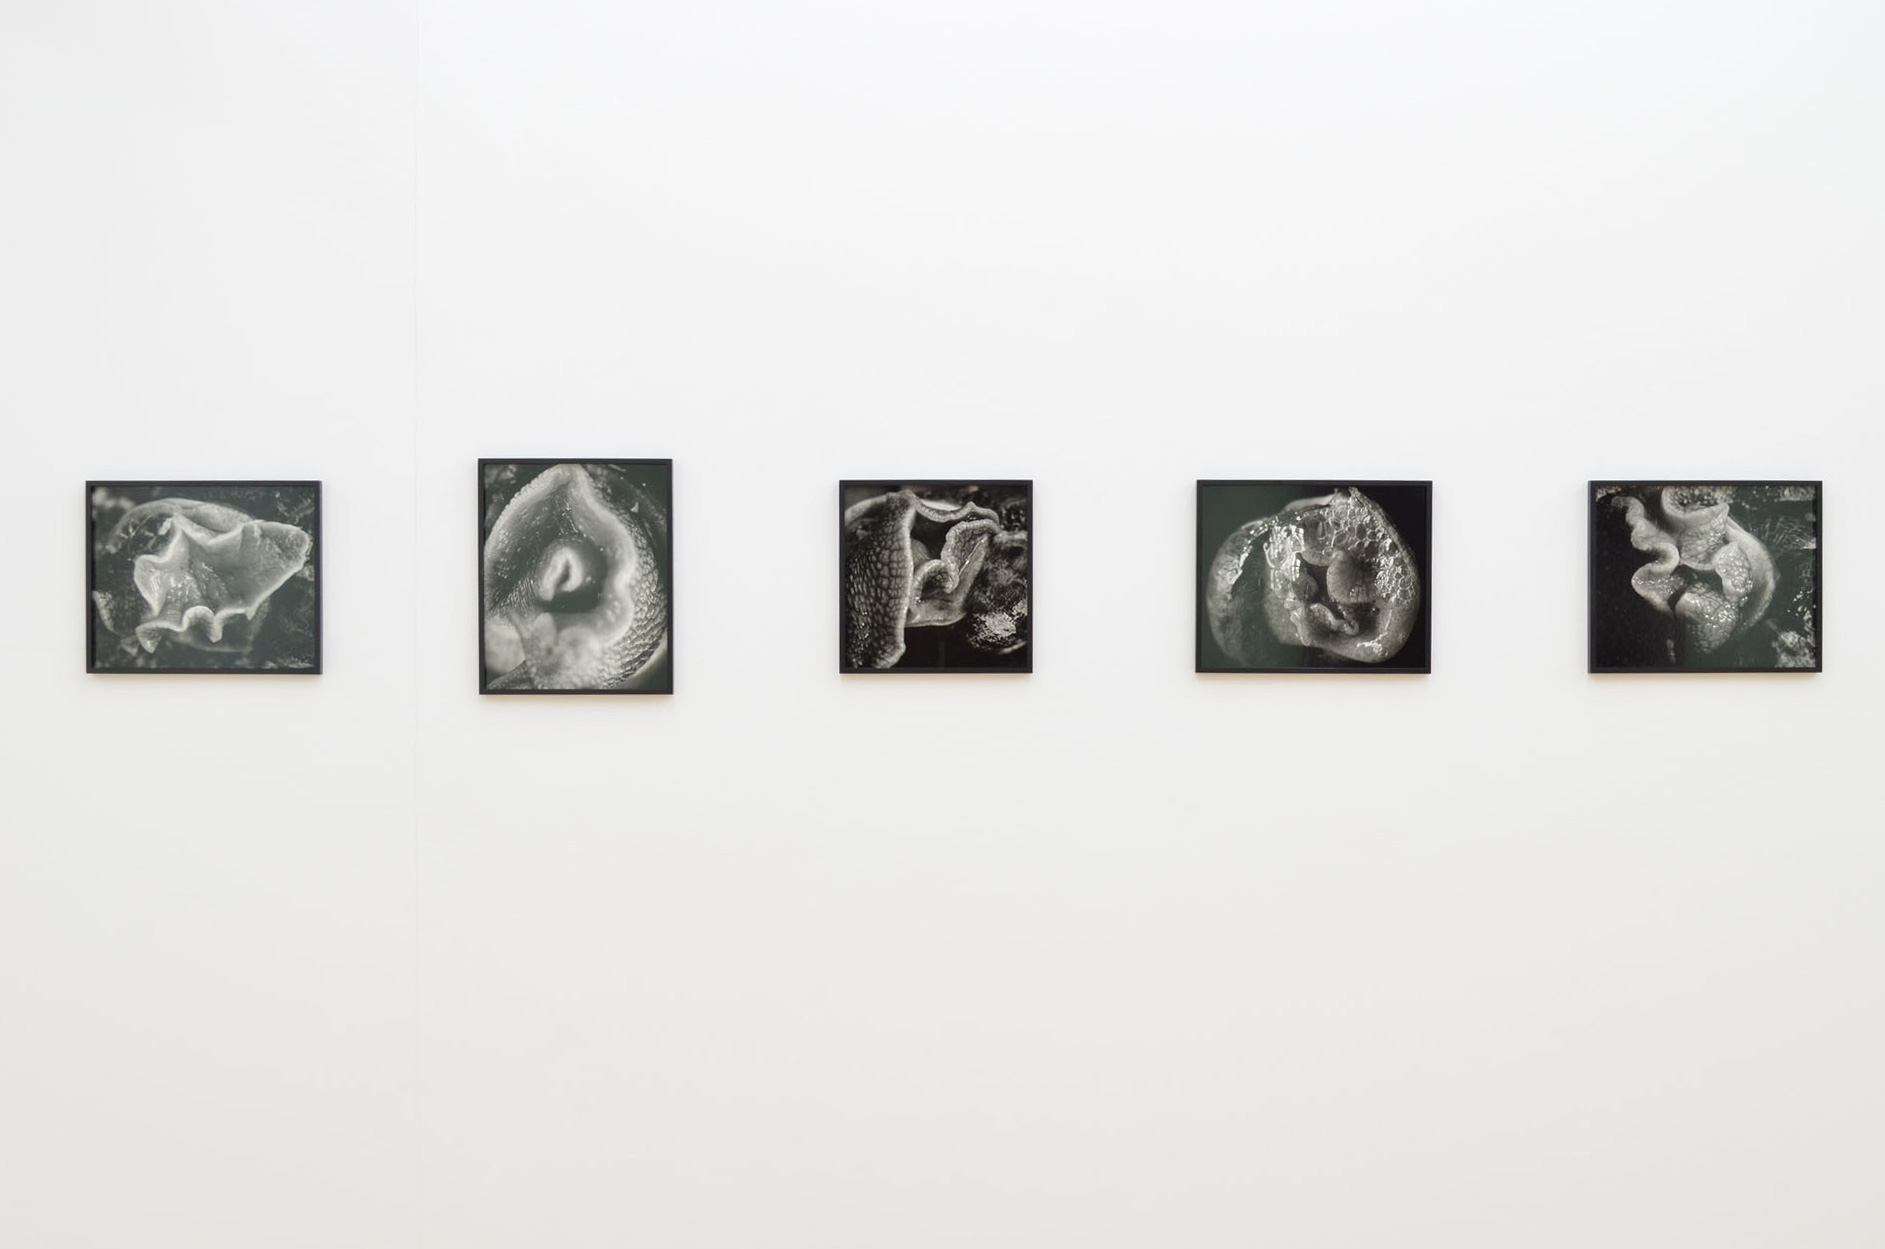 Balthasar Burkhard, Escargot, 1992, Exhibition view Sfeir-Semler Gallery Hamburg, 2014